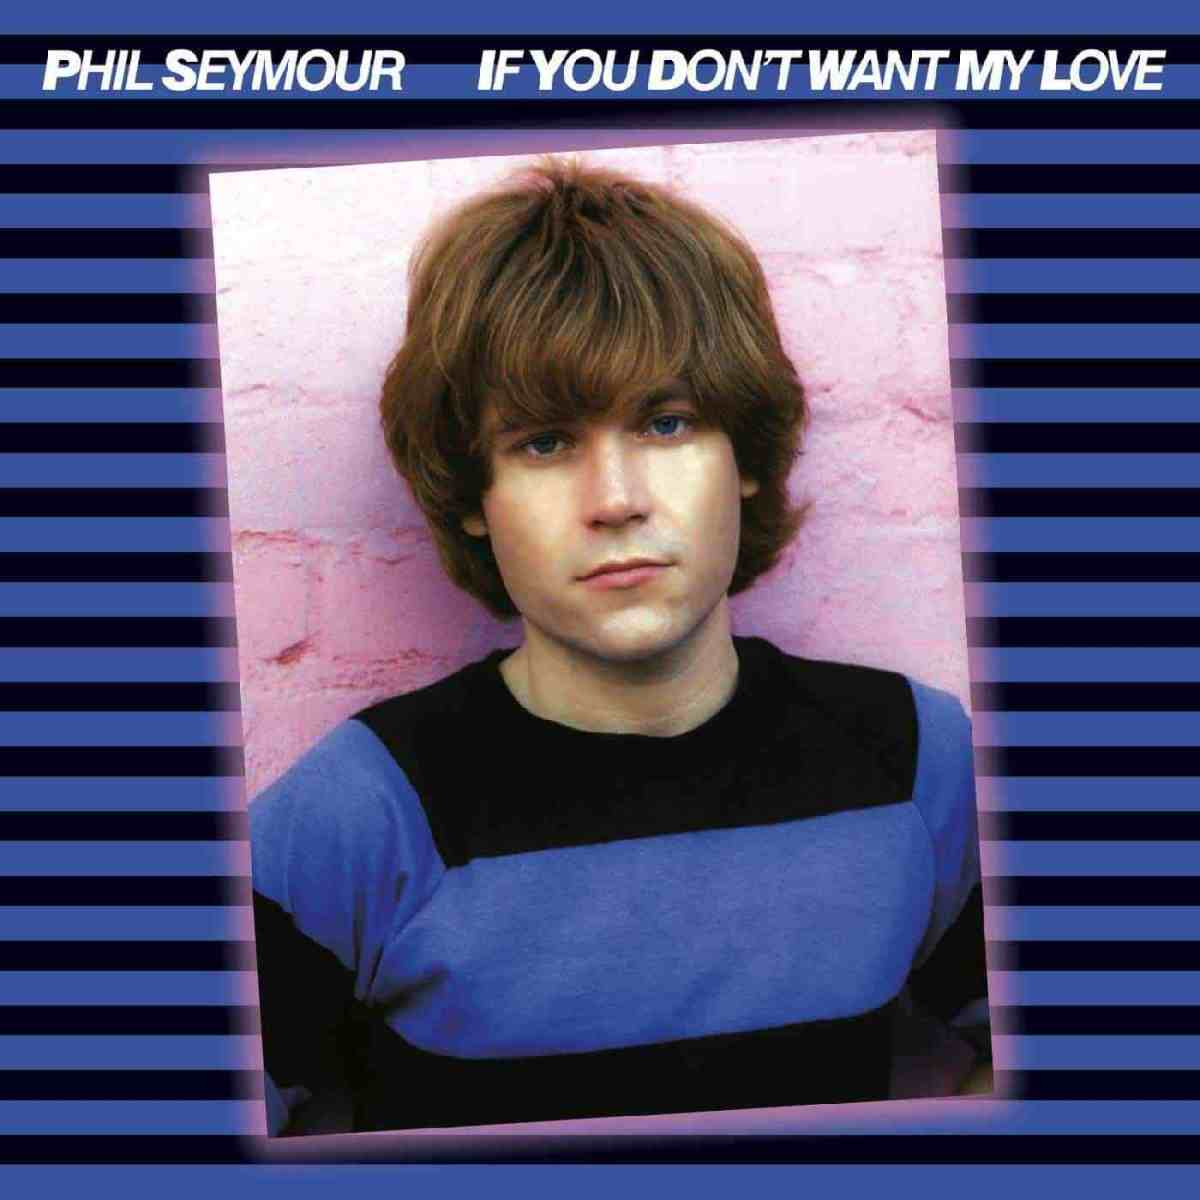 Phil-Seymour-If-You-Dont-Want-My-Love